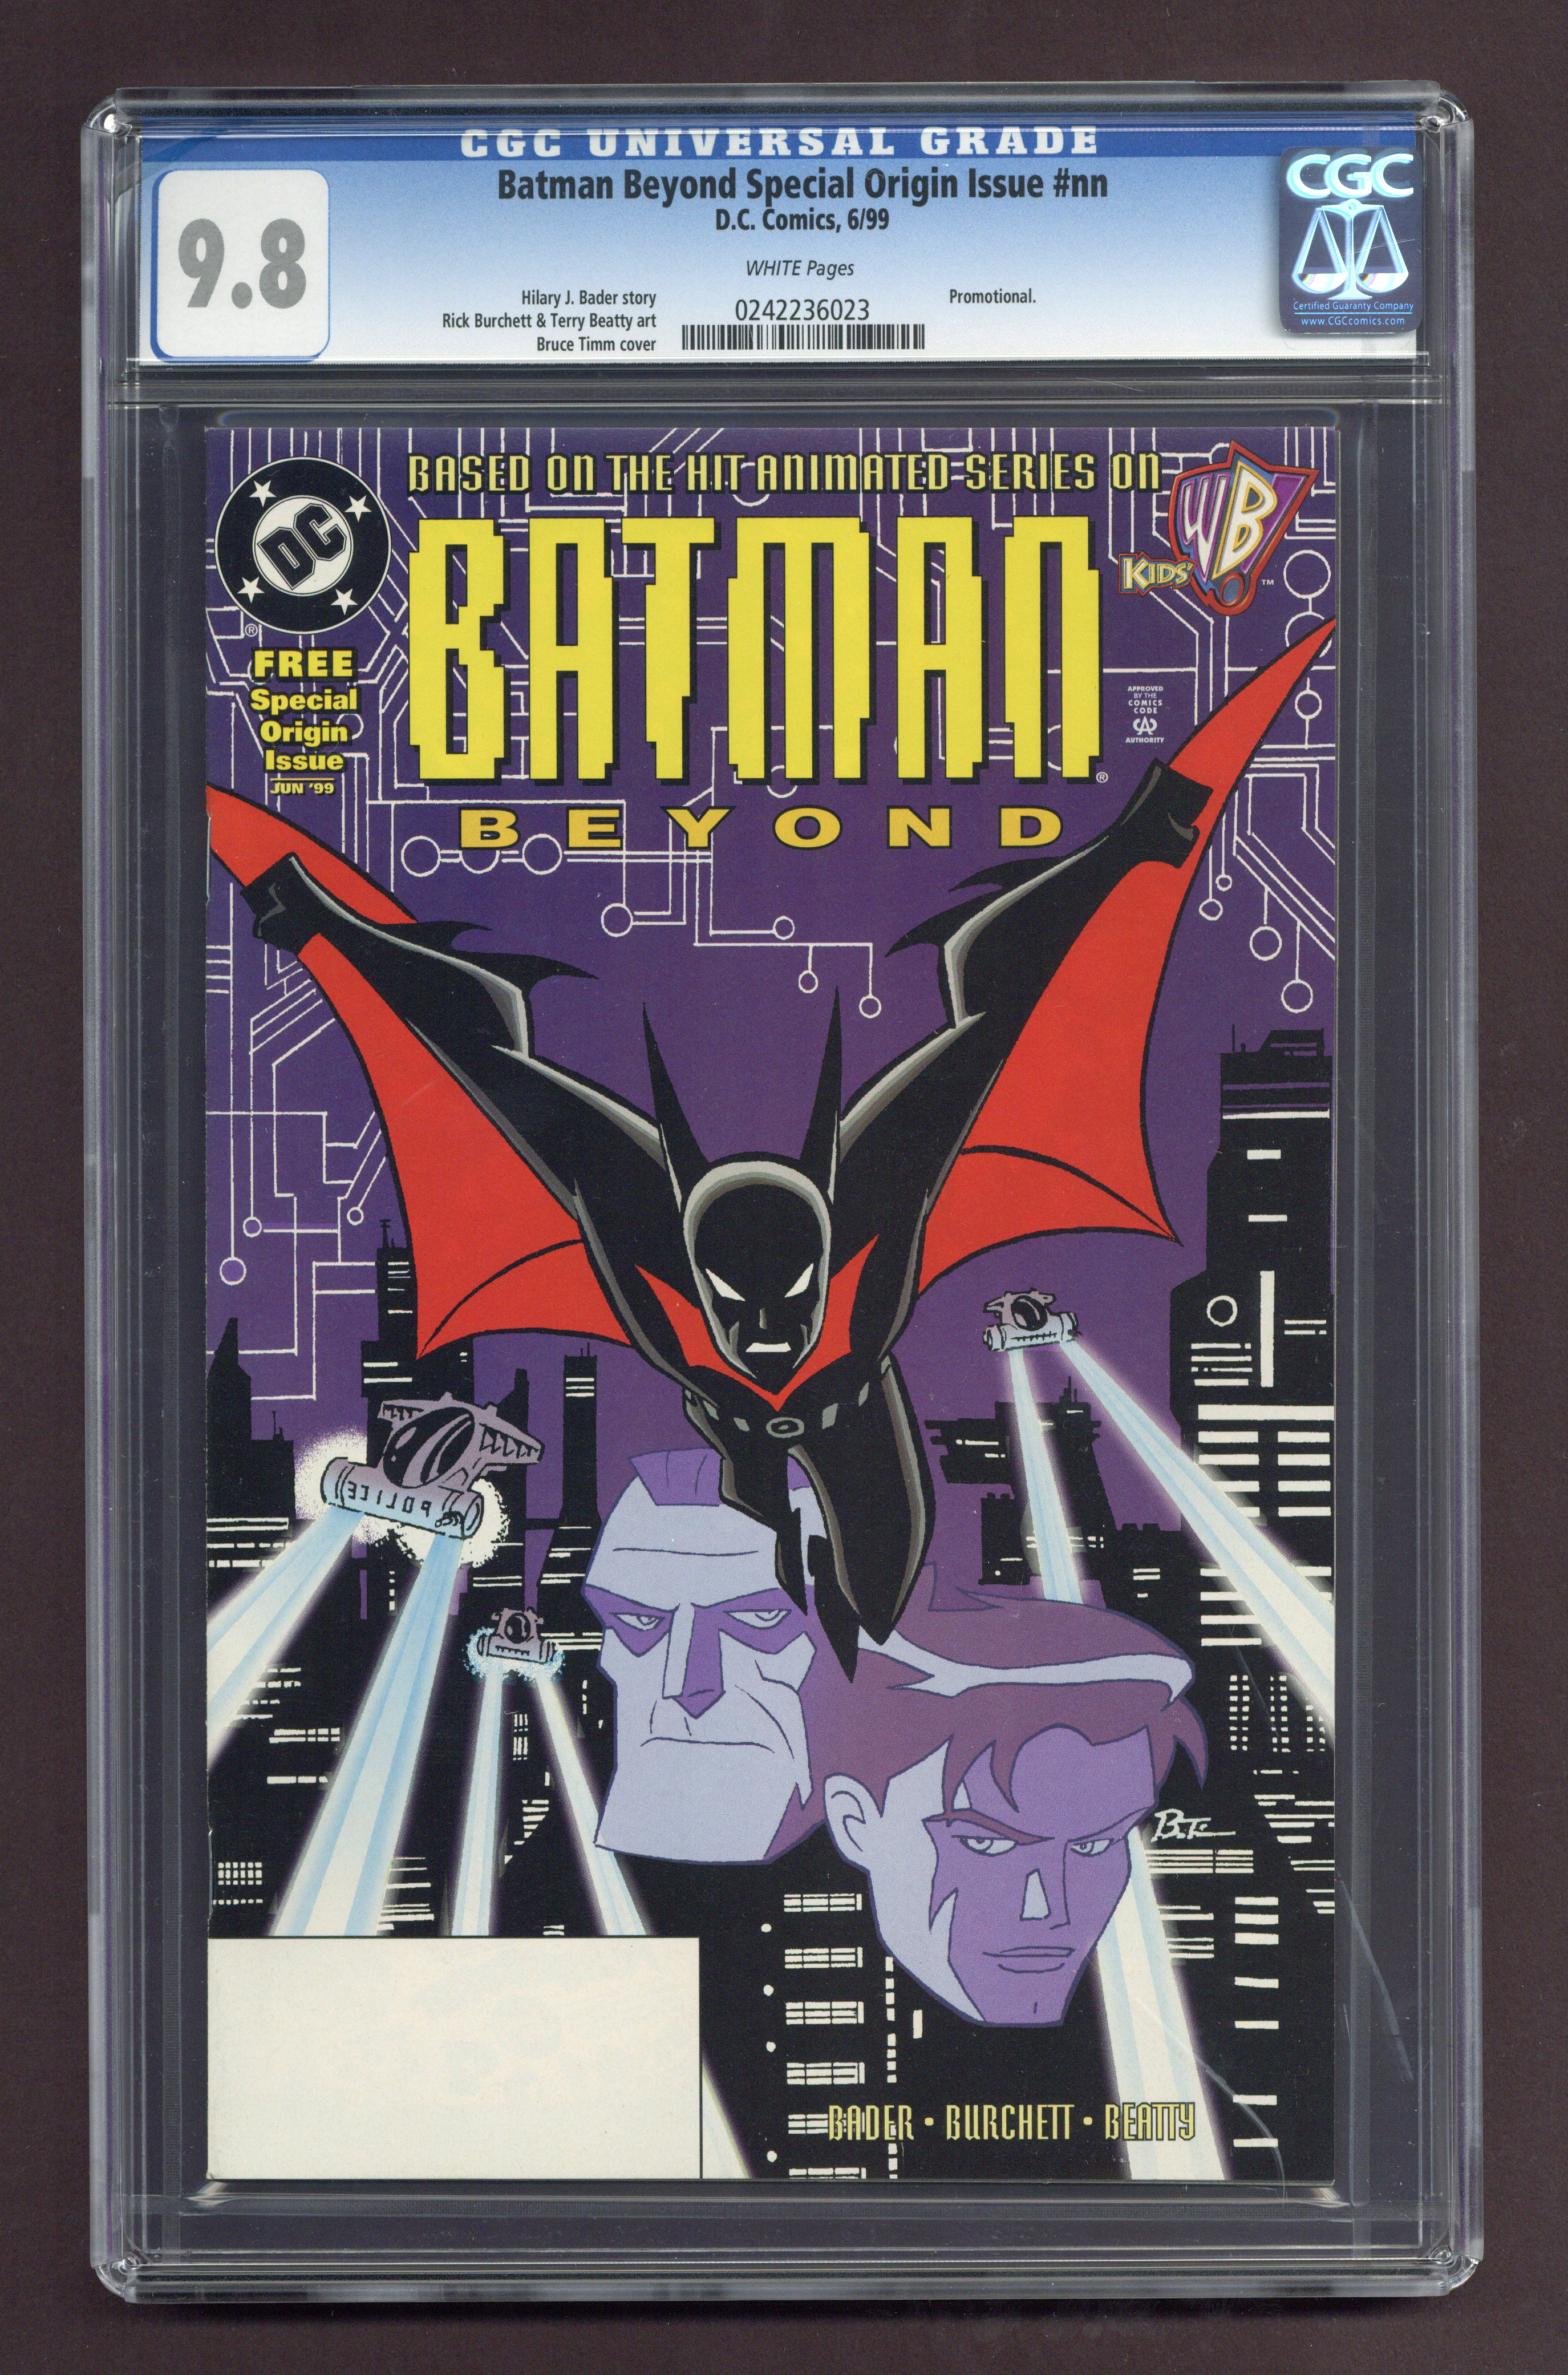 Batman beyond special origin issue comic books graded by cgc zoom front cover batman beyond special origin voltagebd Image collections